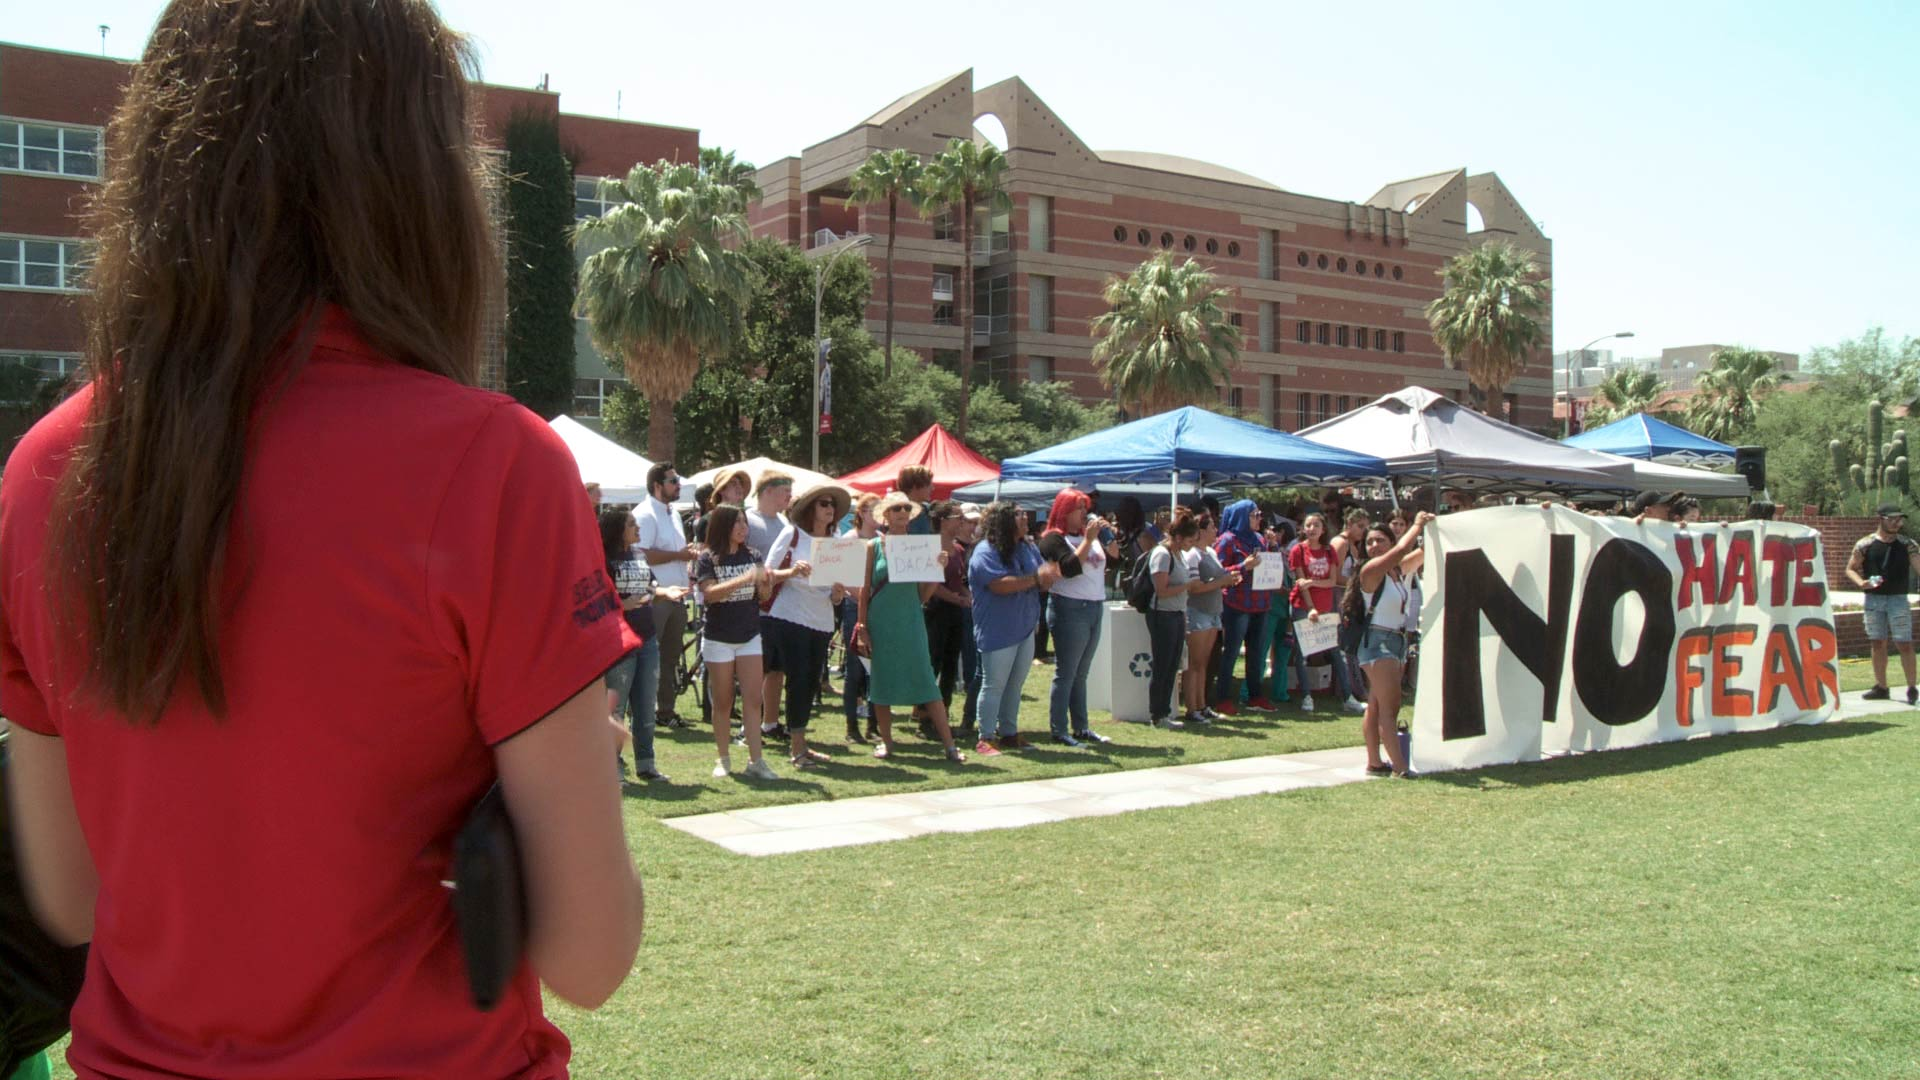 Students on the University of Arizona campus protest the announcement in September 2017 that DACA would be phased out.